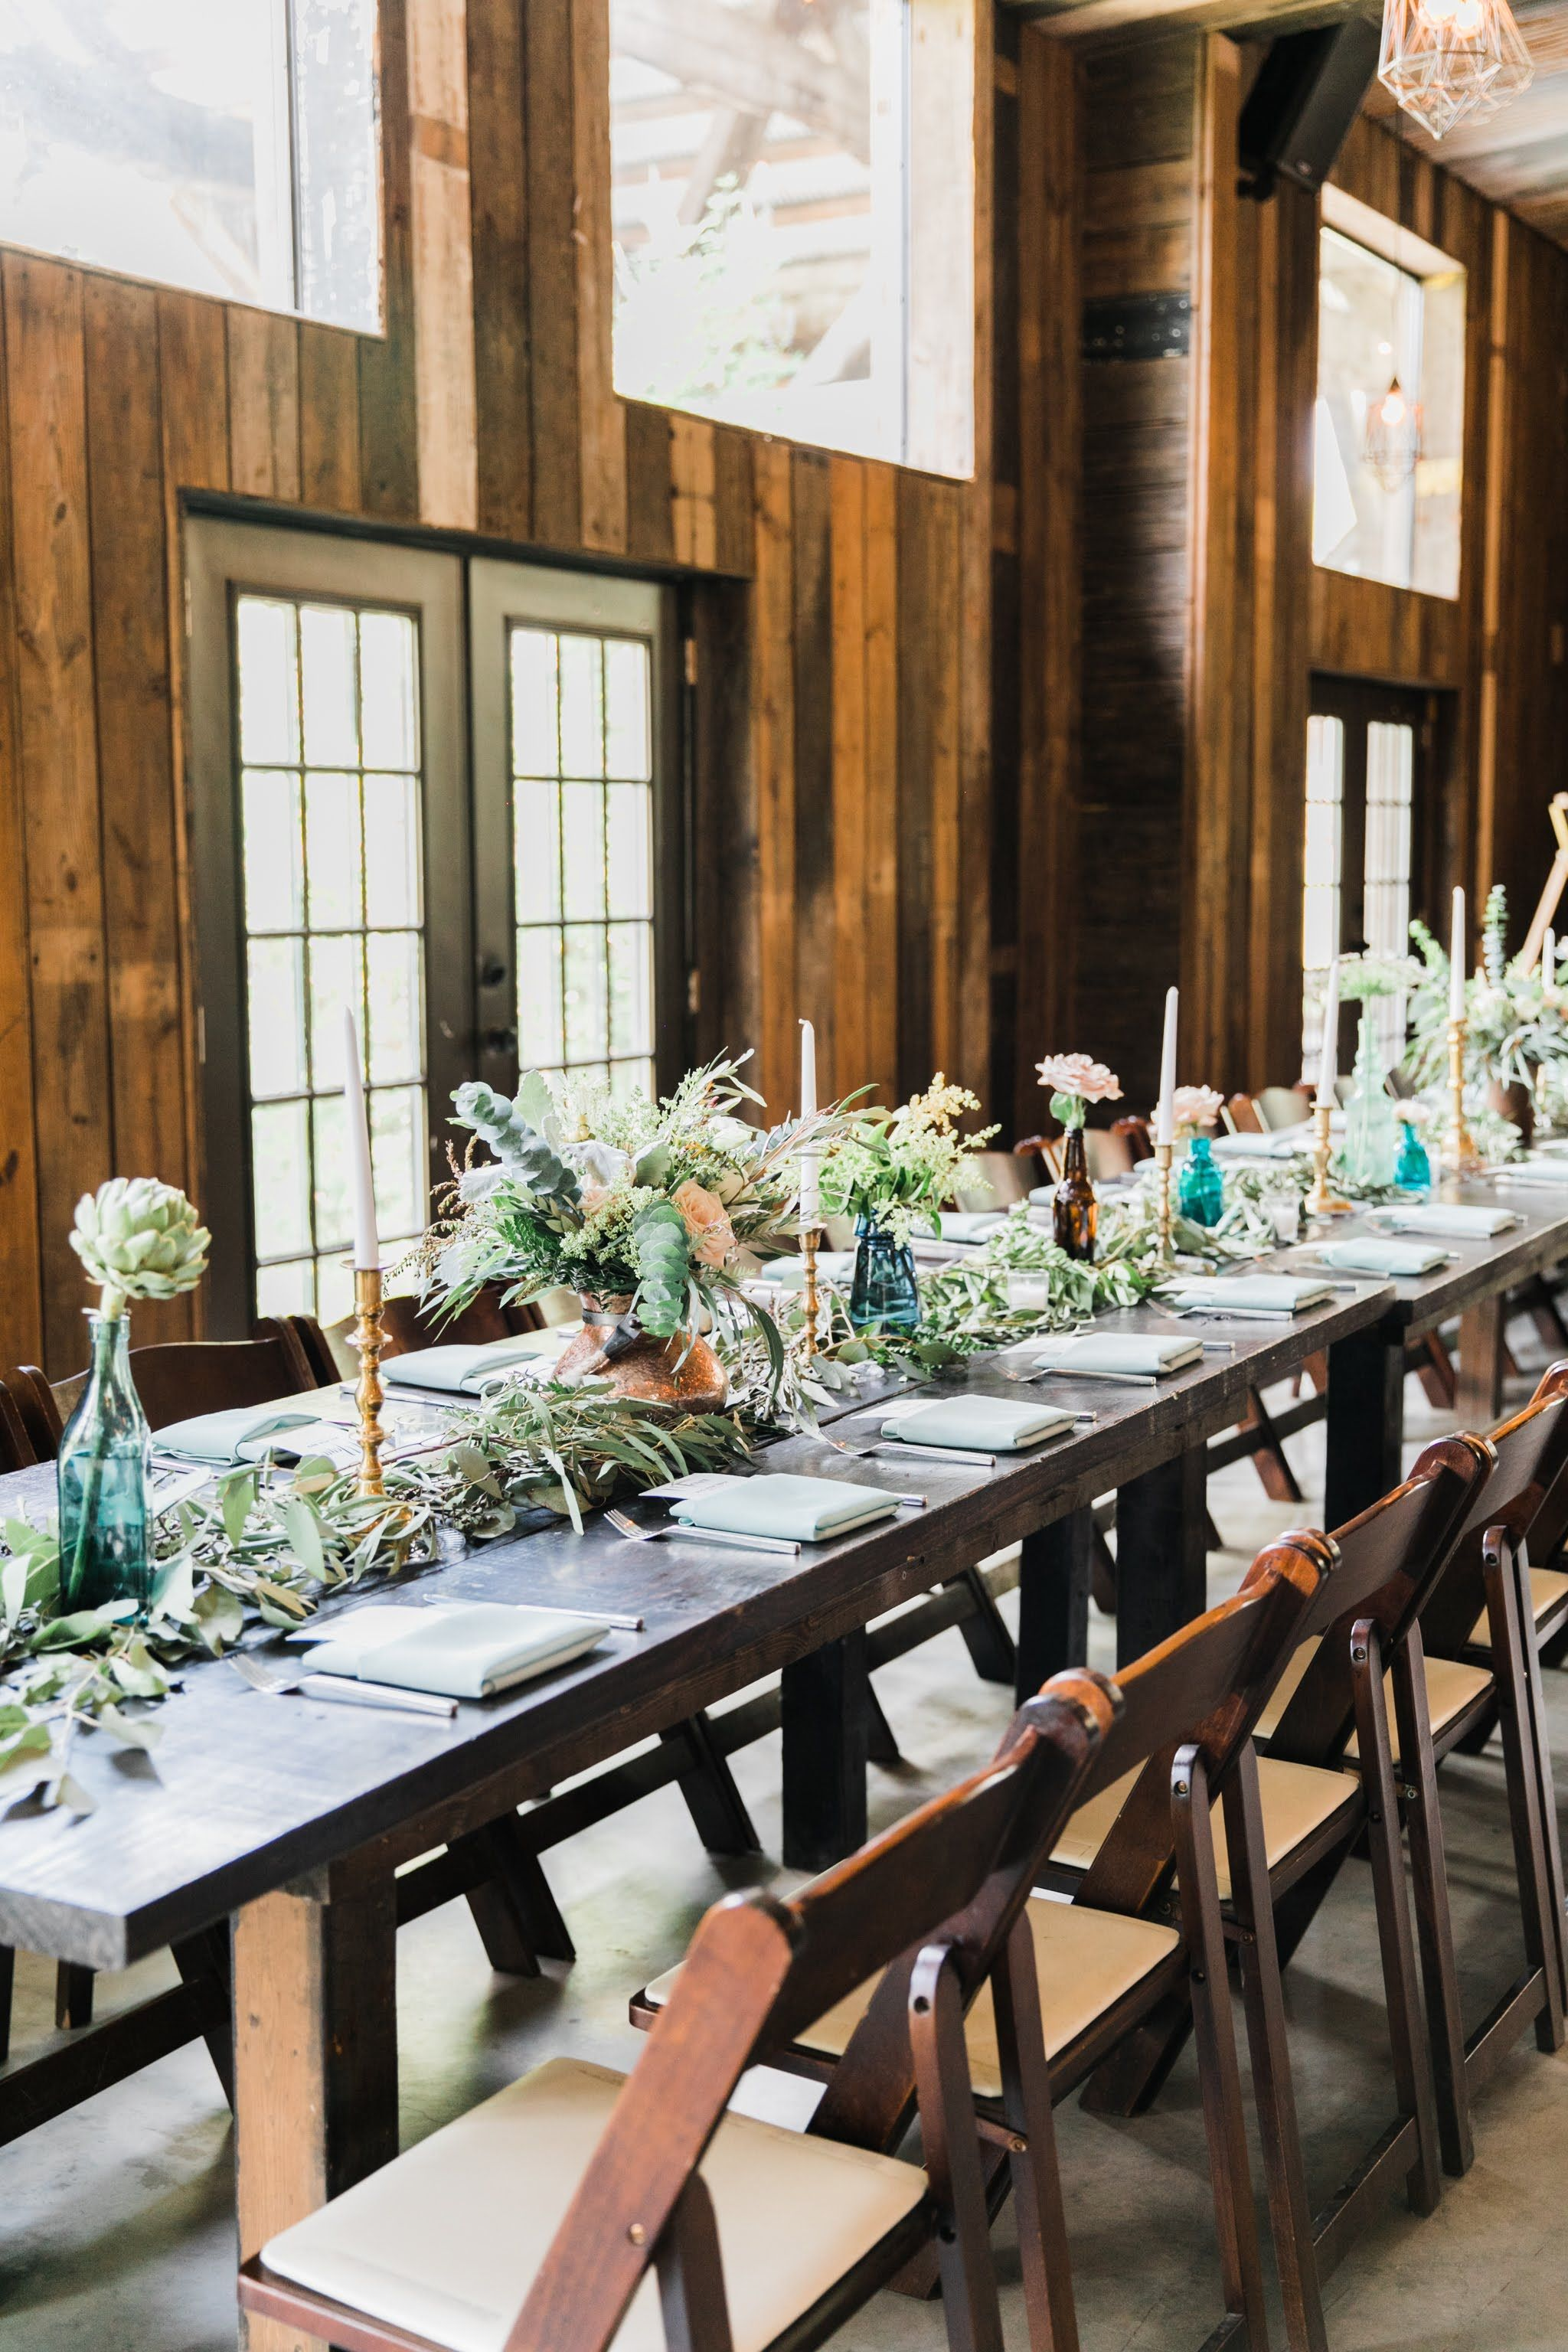 Runners with greenery on dark stained farm tables are our